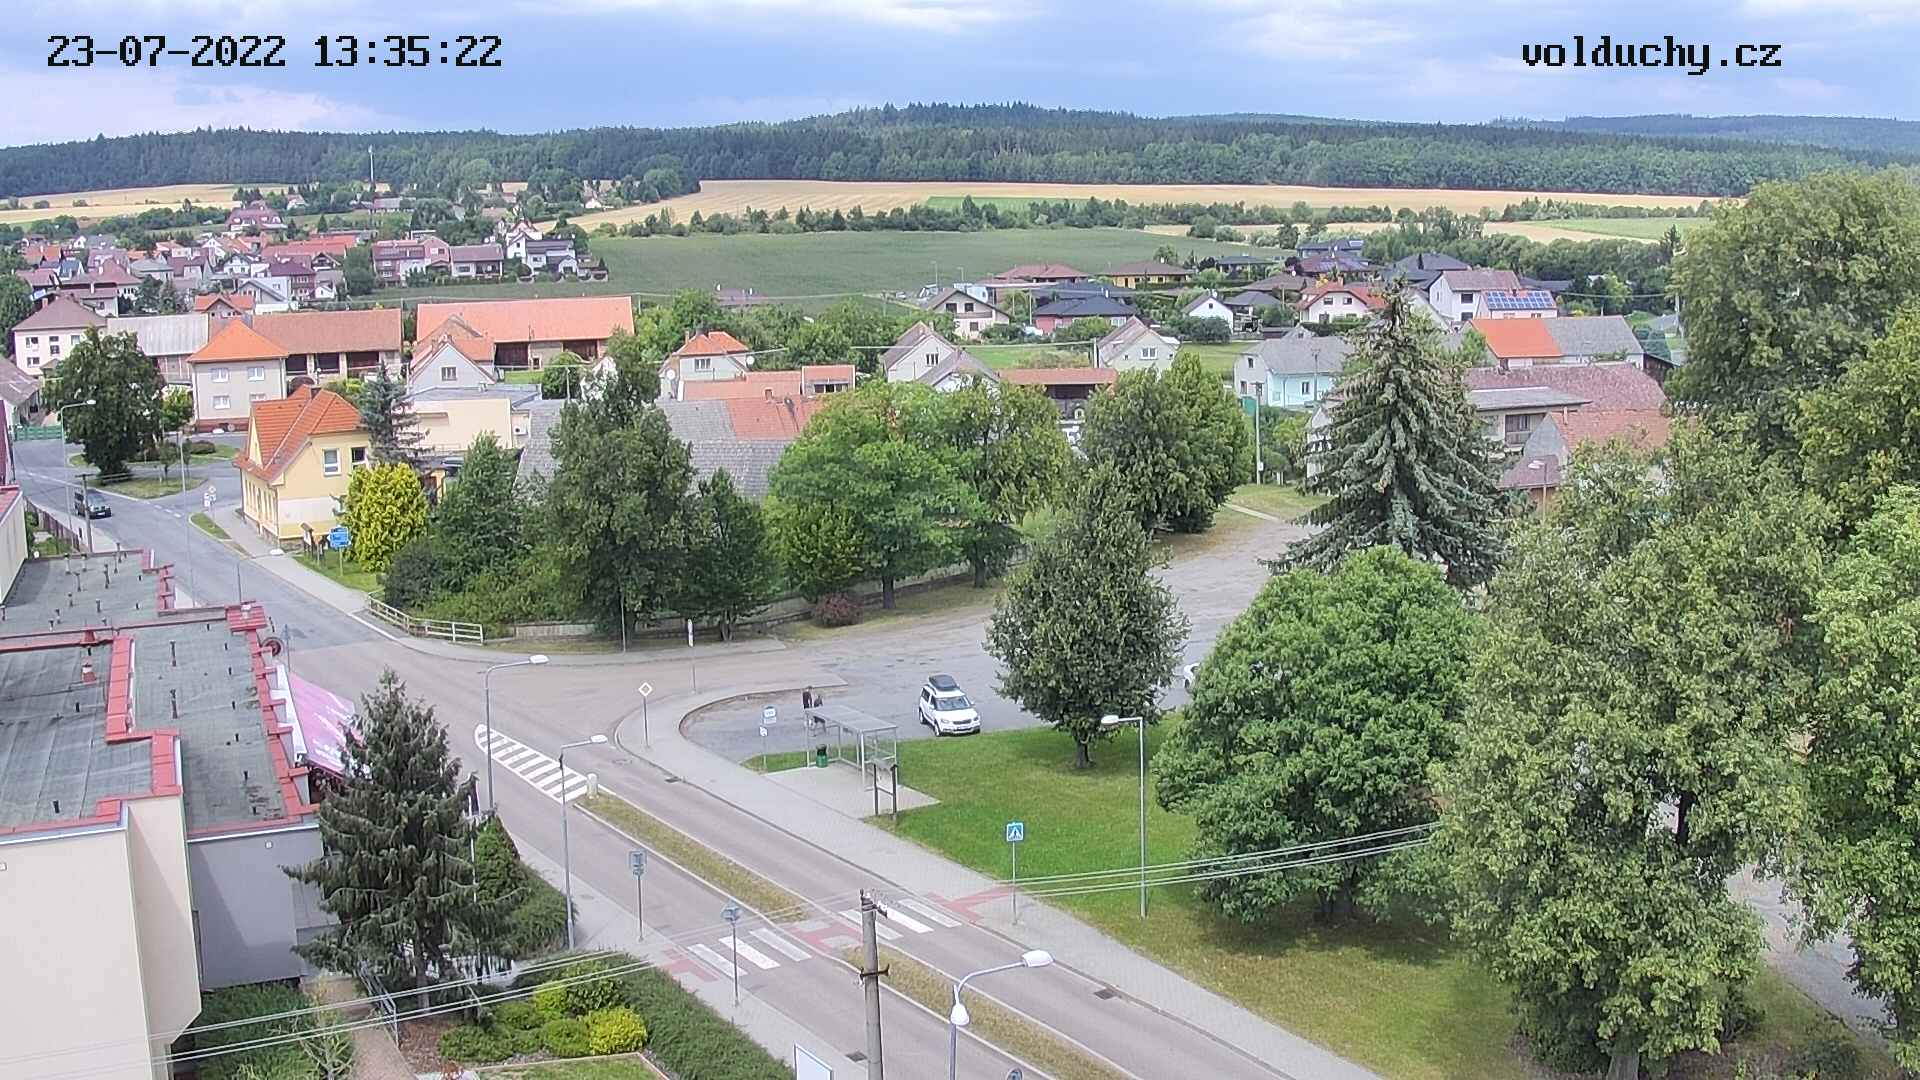 Webcam Volduchy